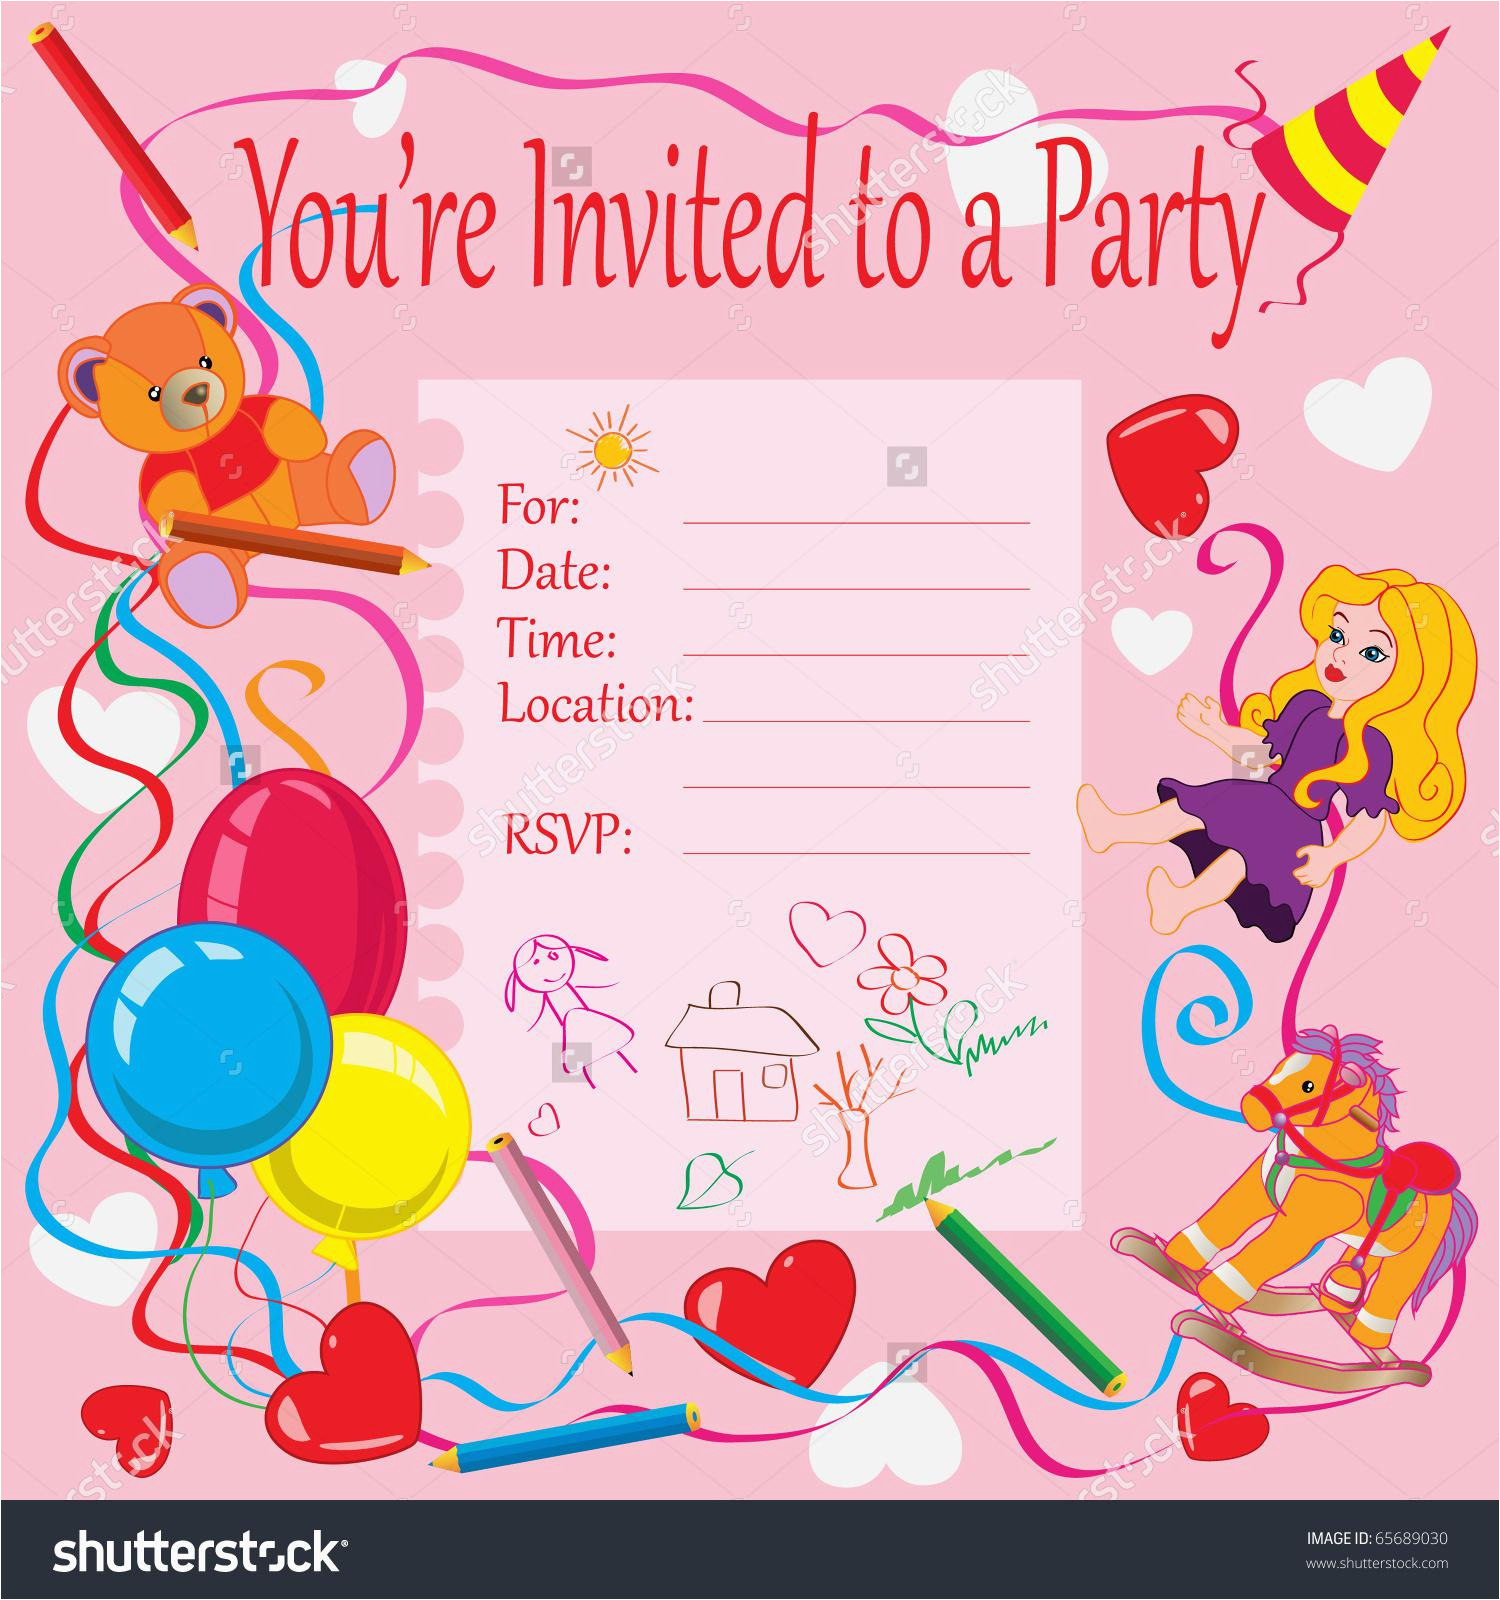 Create Birthday Party Invitations Online Free Make Your Own Printable